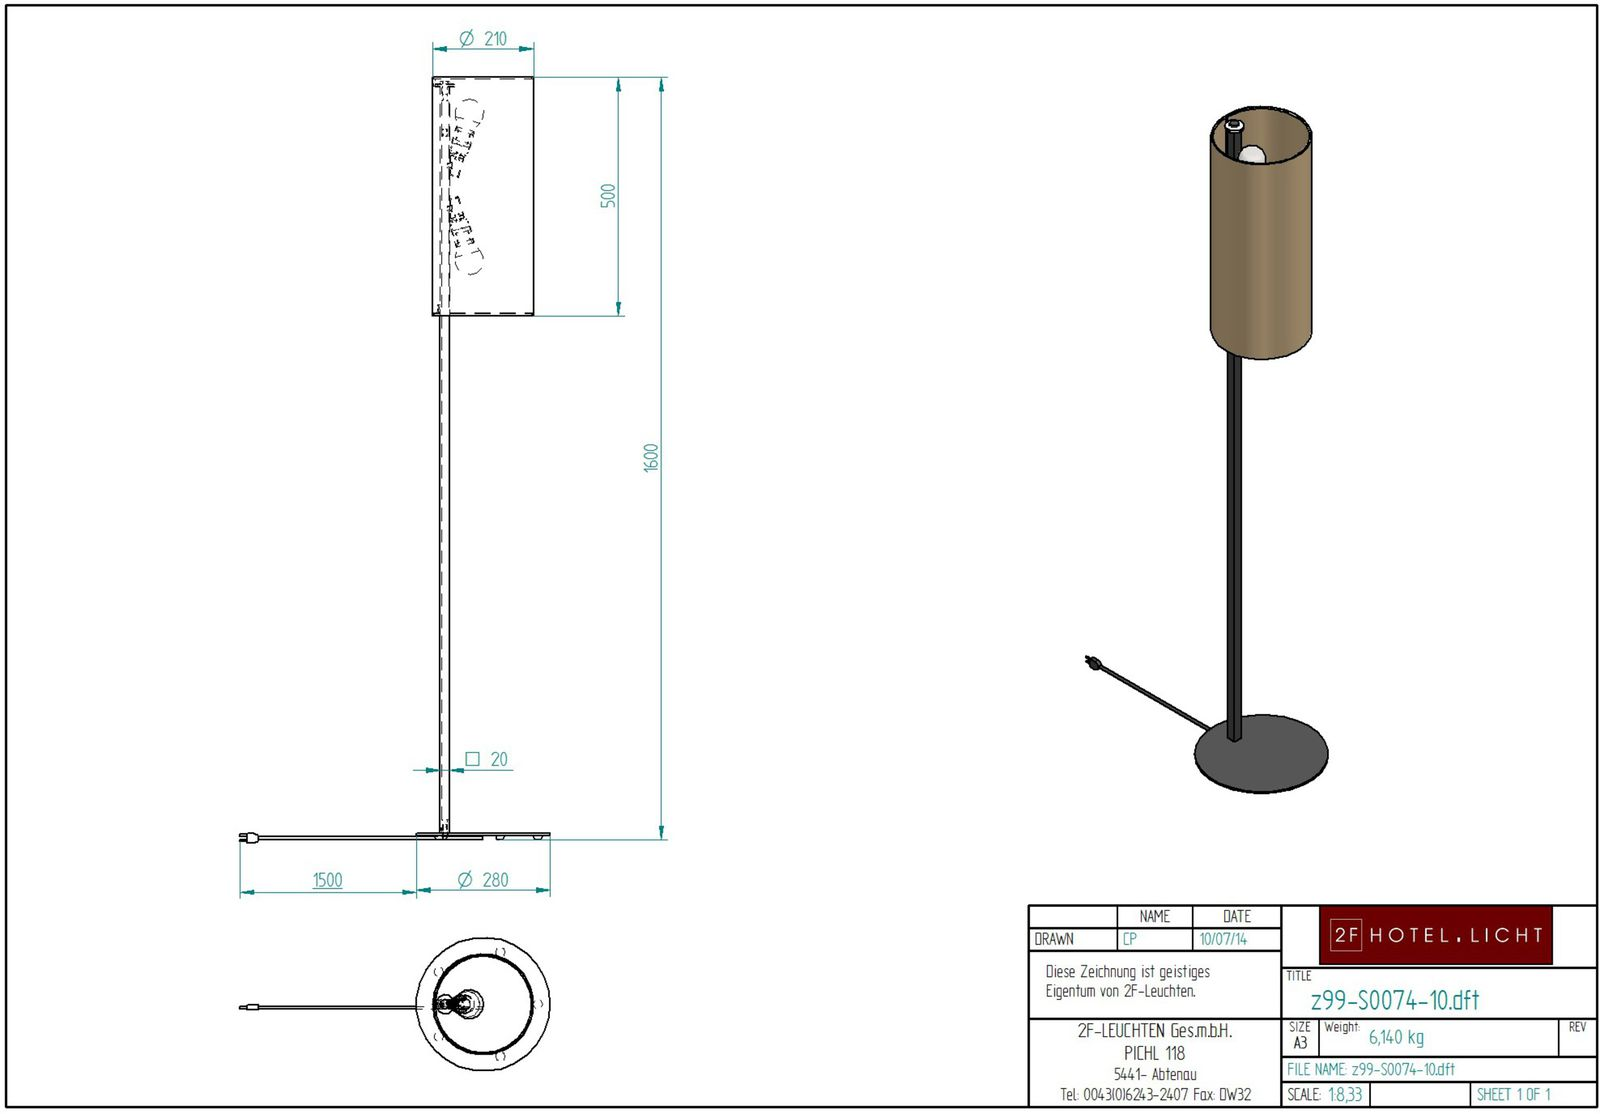 Floor lamp, l=Ø210mm, height=1600mm, without switch, surface metal: MO4 bronze, techn. Data: 2xE27, max. 42W, 230V, cable: black